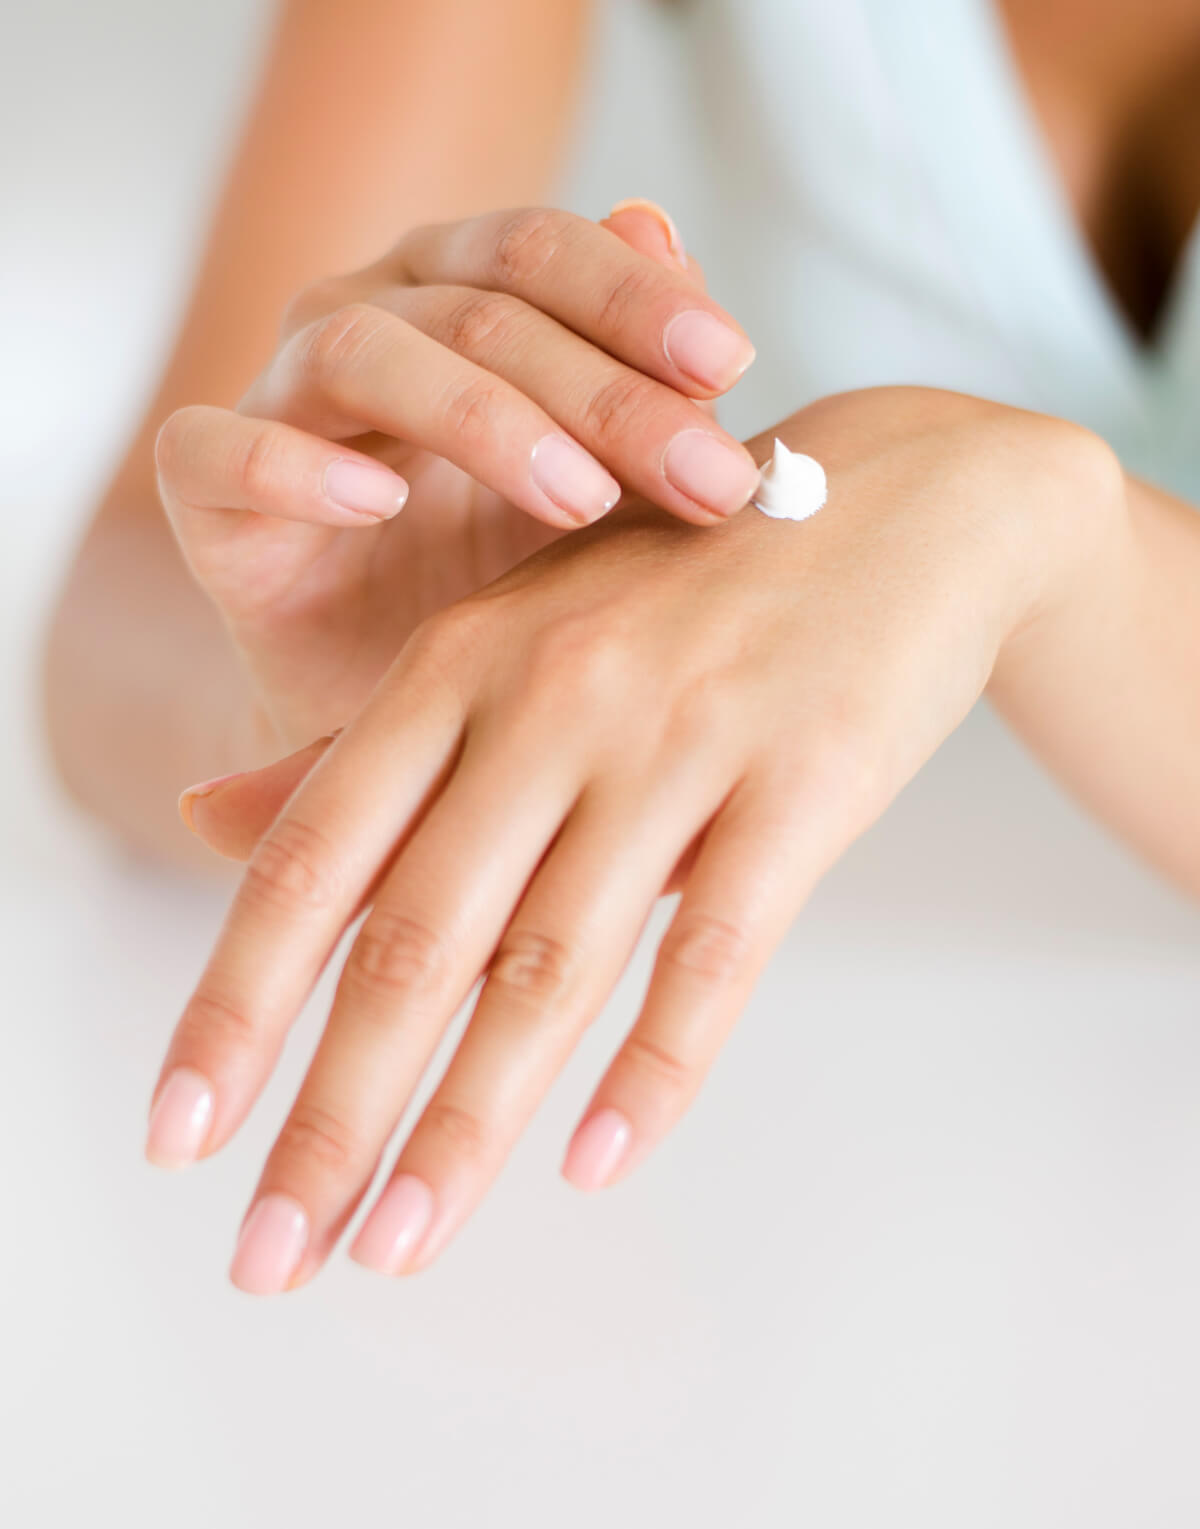 Where to Apply Hand Cream with Essential Oils On the Body